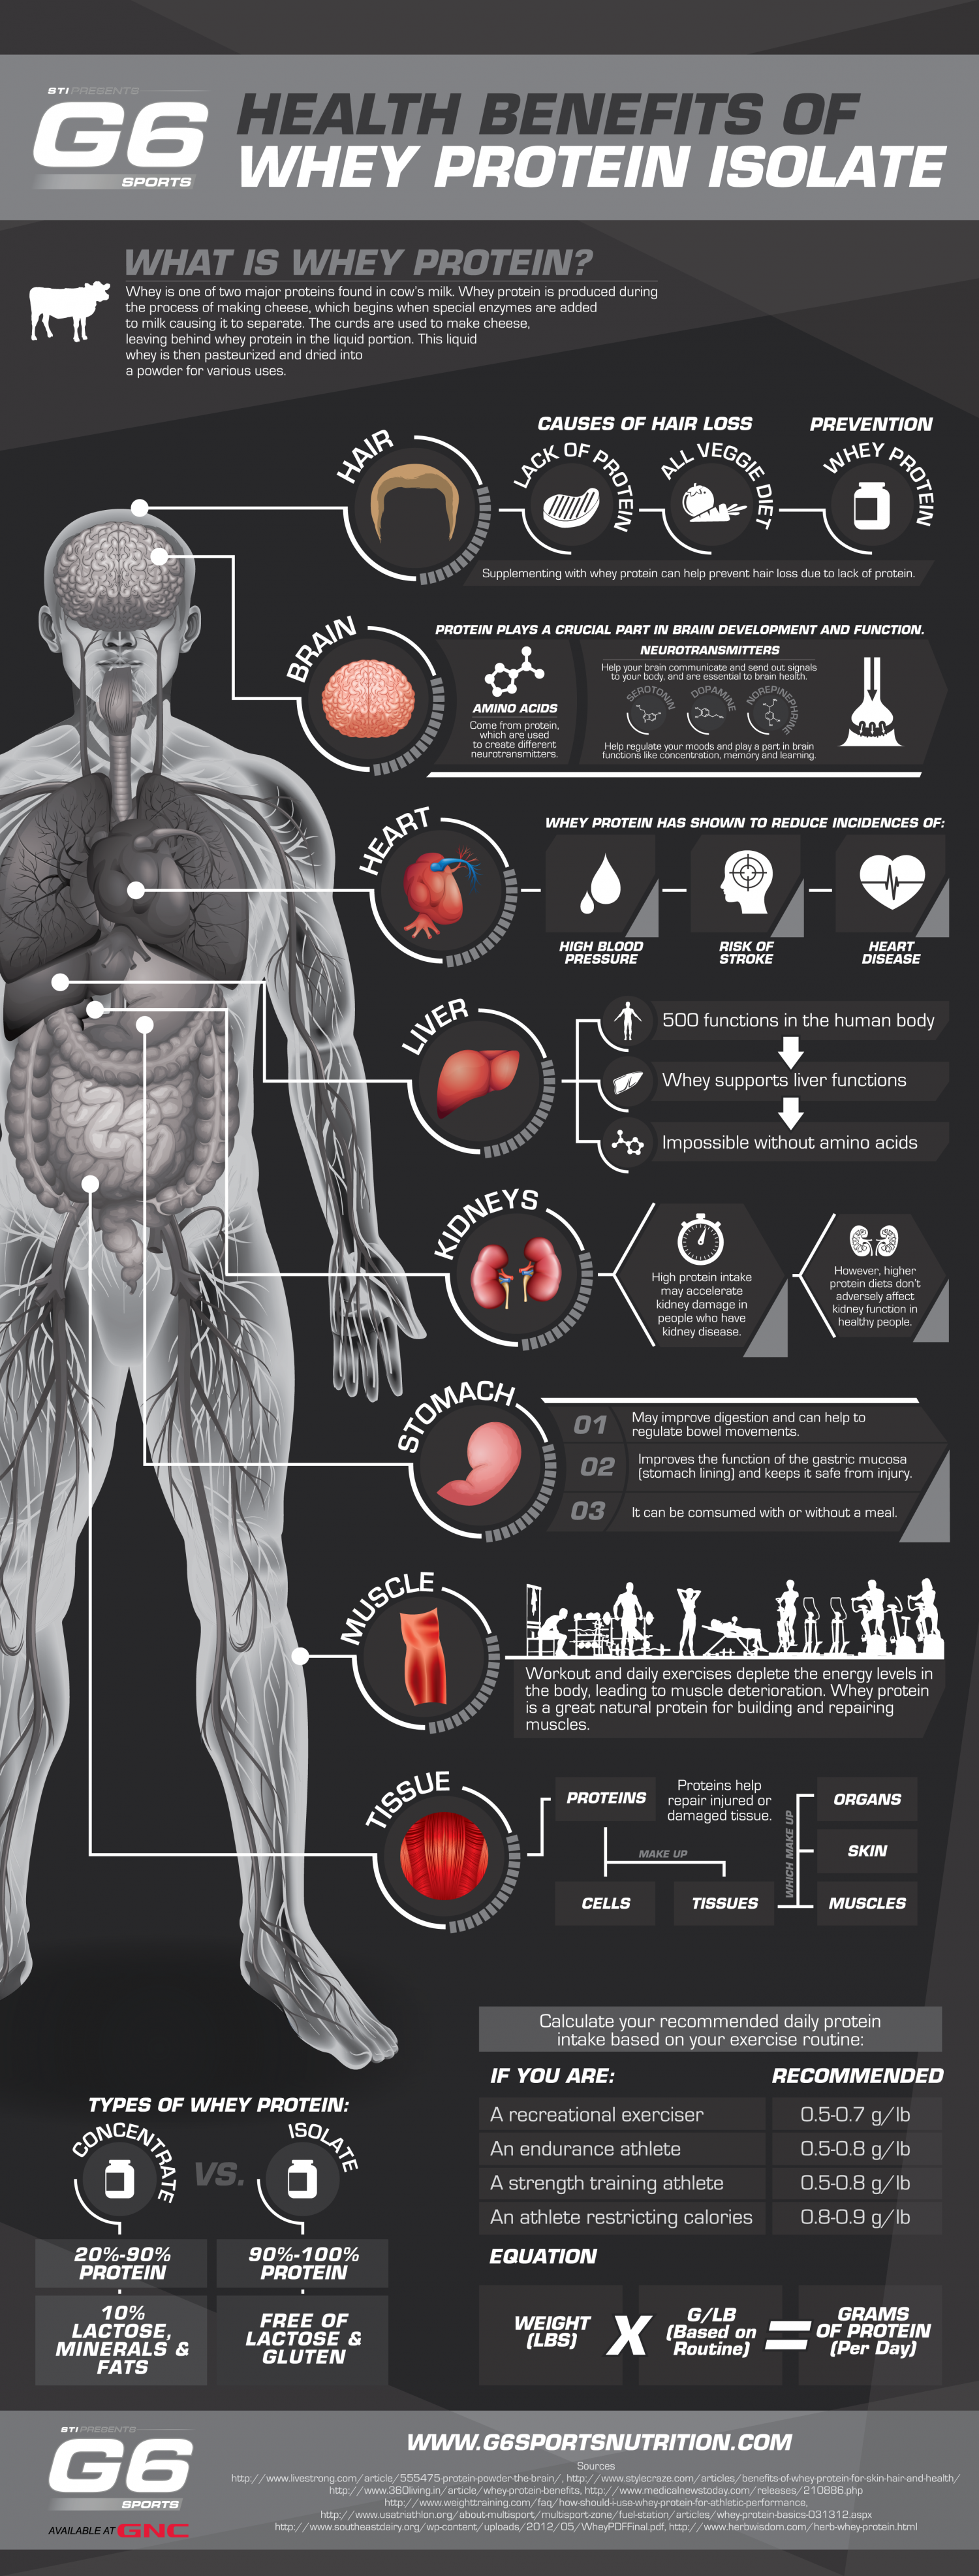 Health Benefits of Whey Protein Isolate Infographic